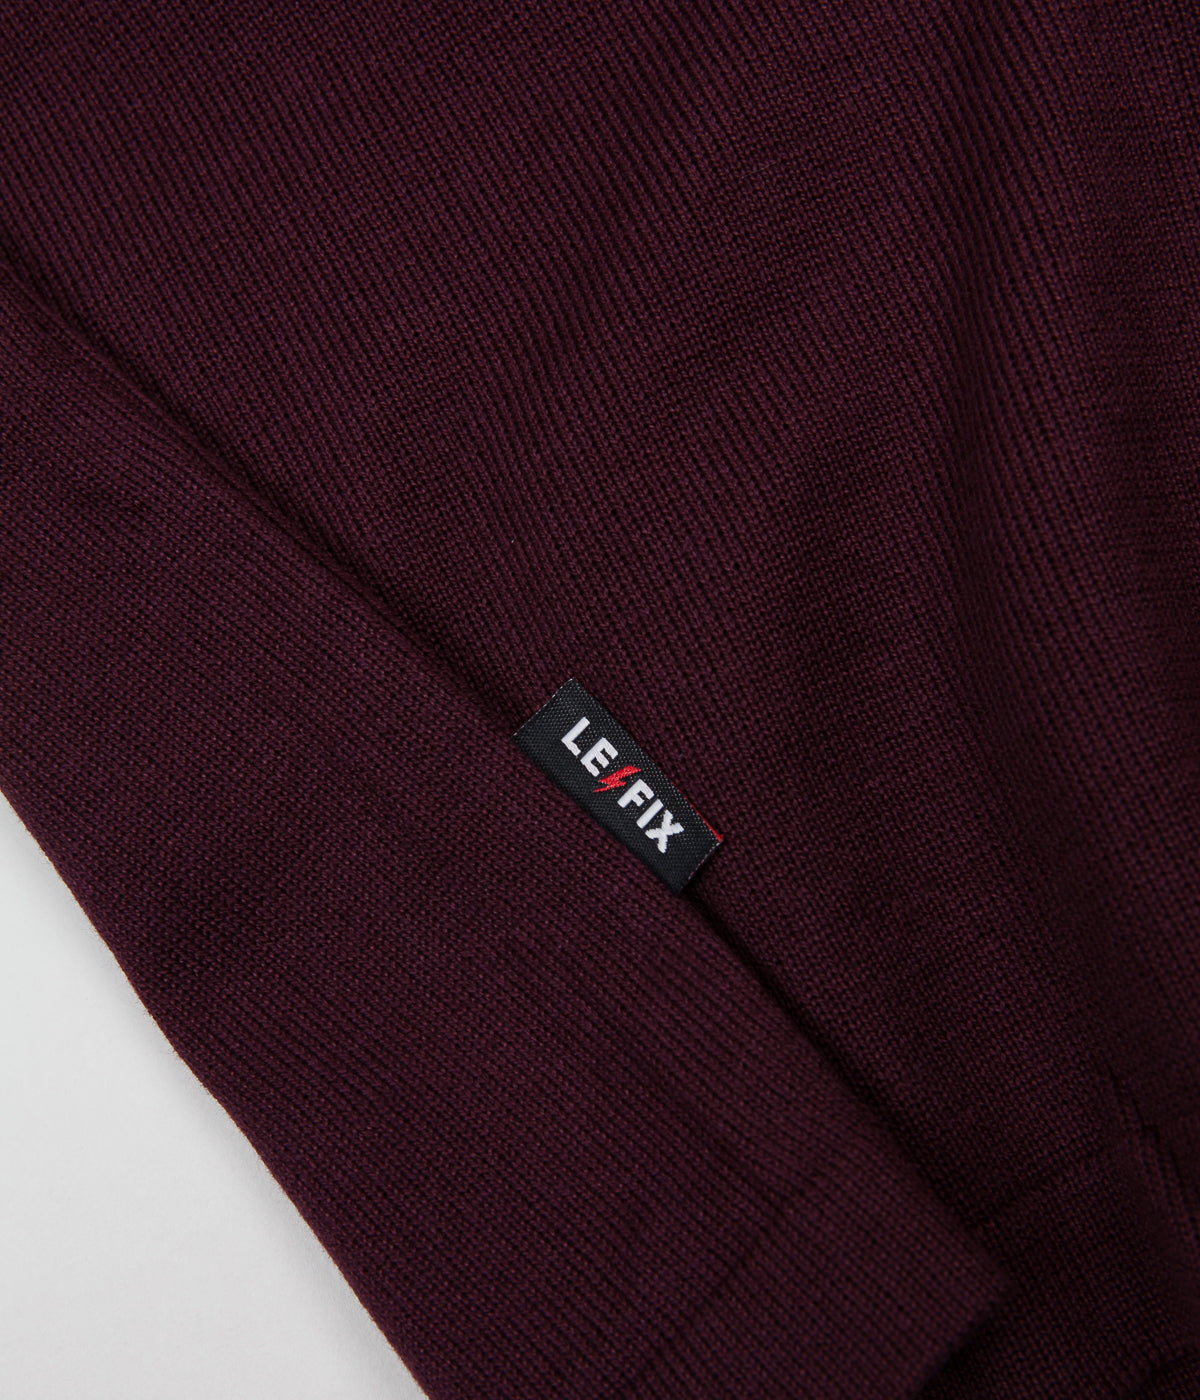 Le Fix Flag Bike Knit Sweatshirt - Maroon